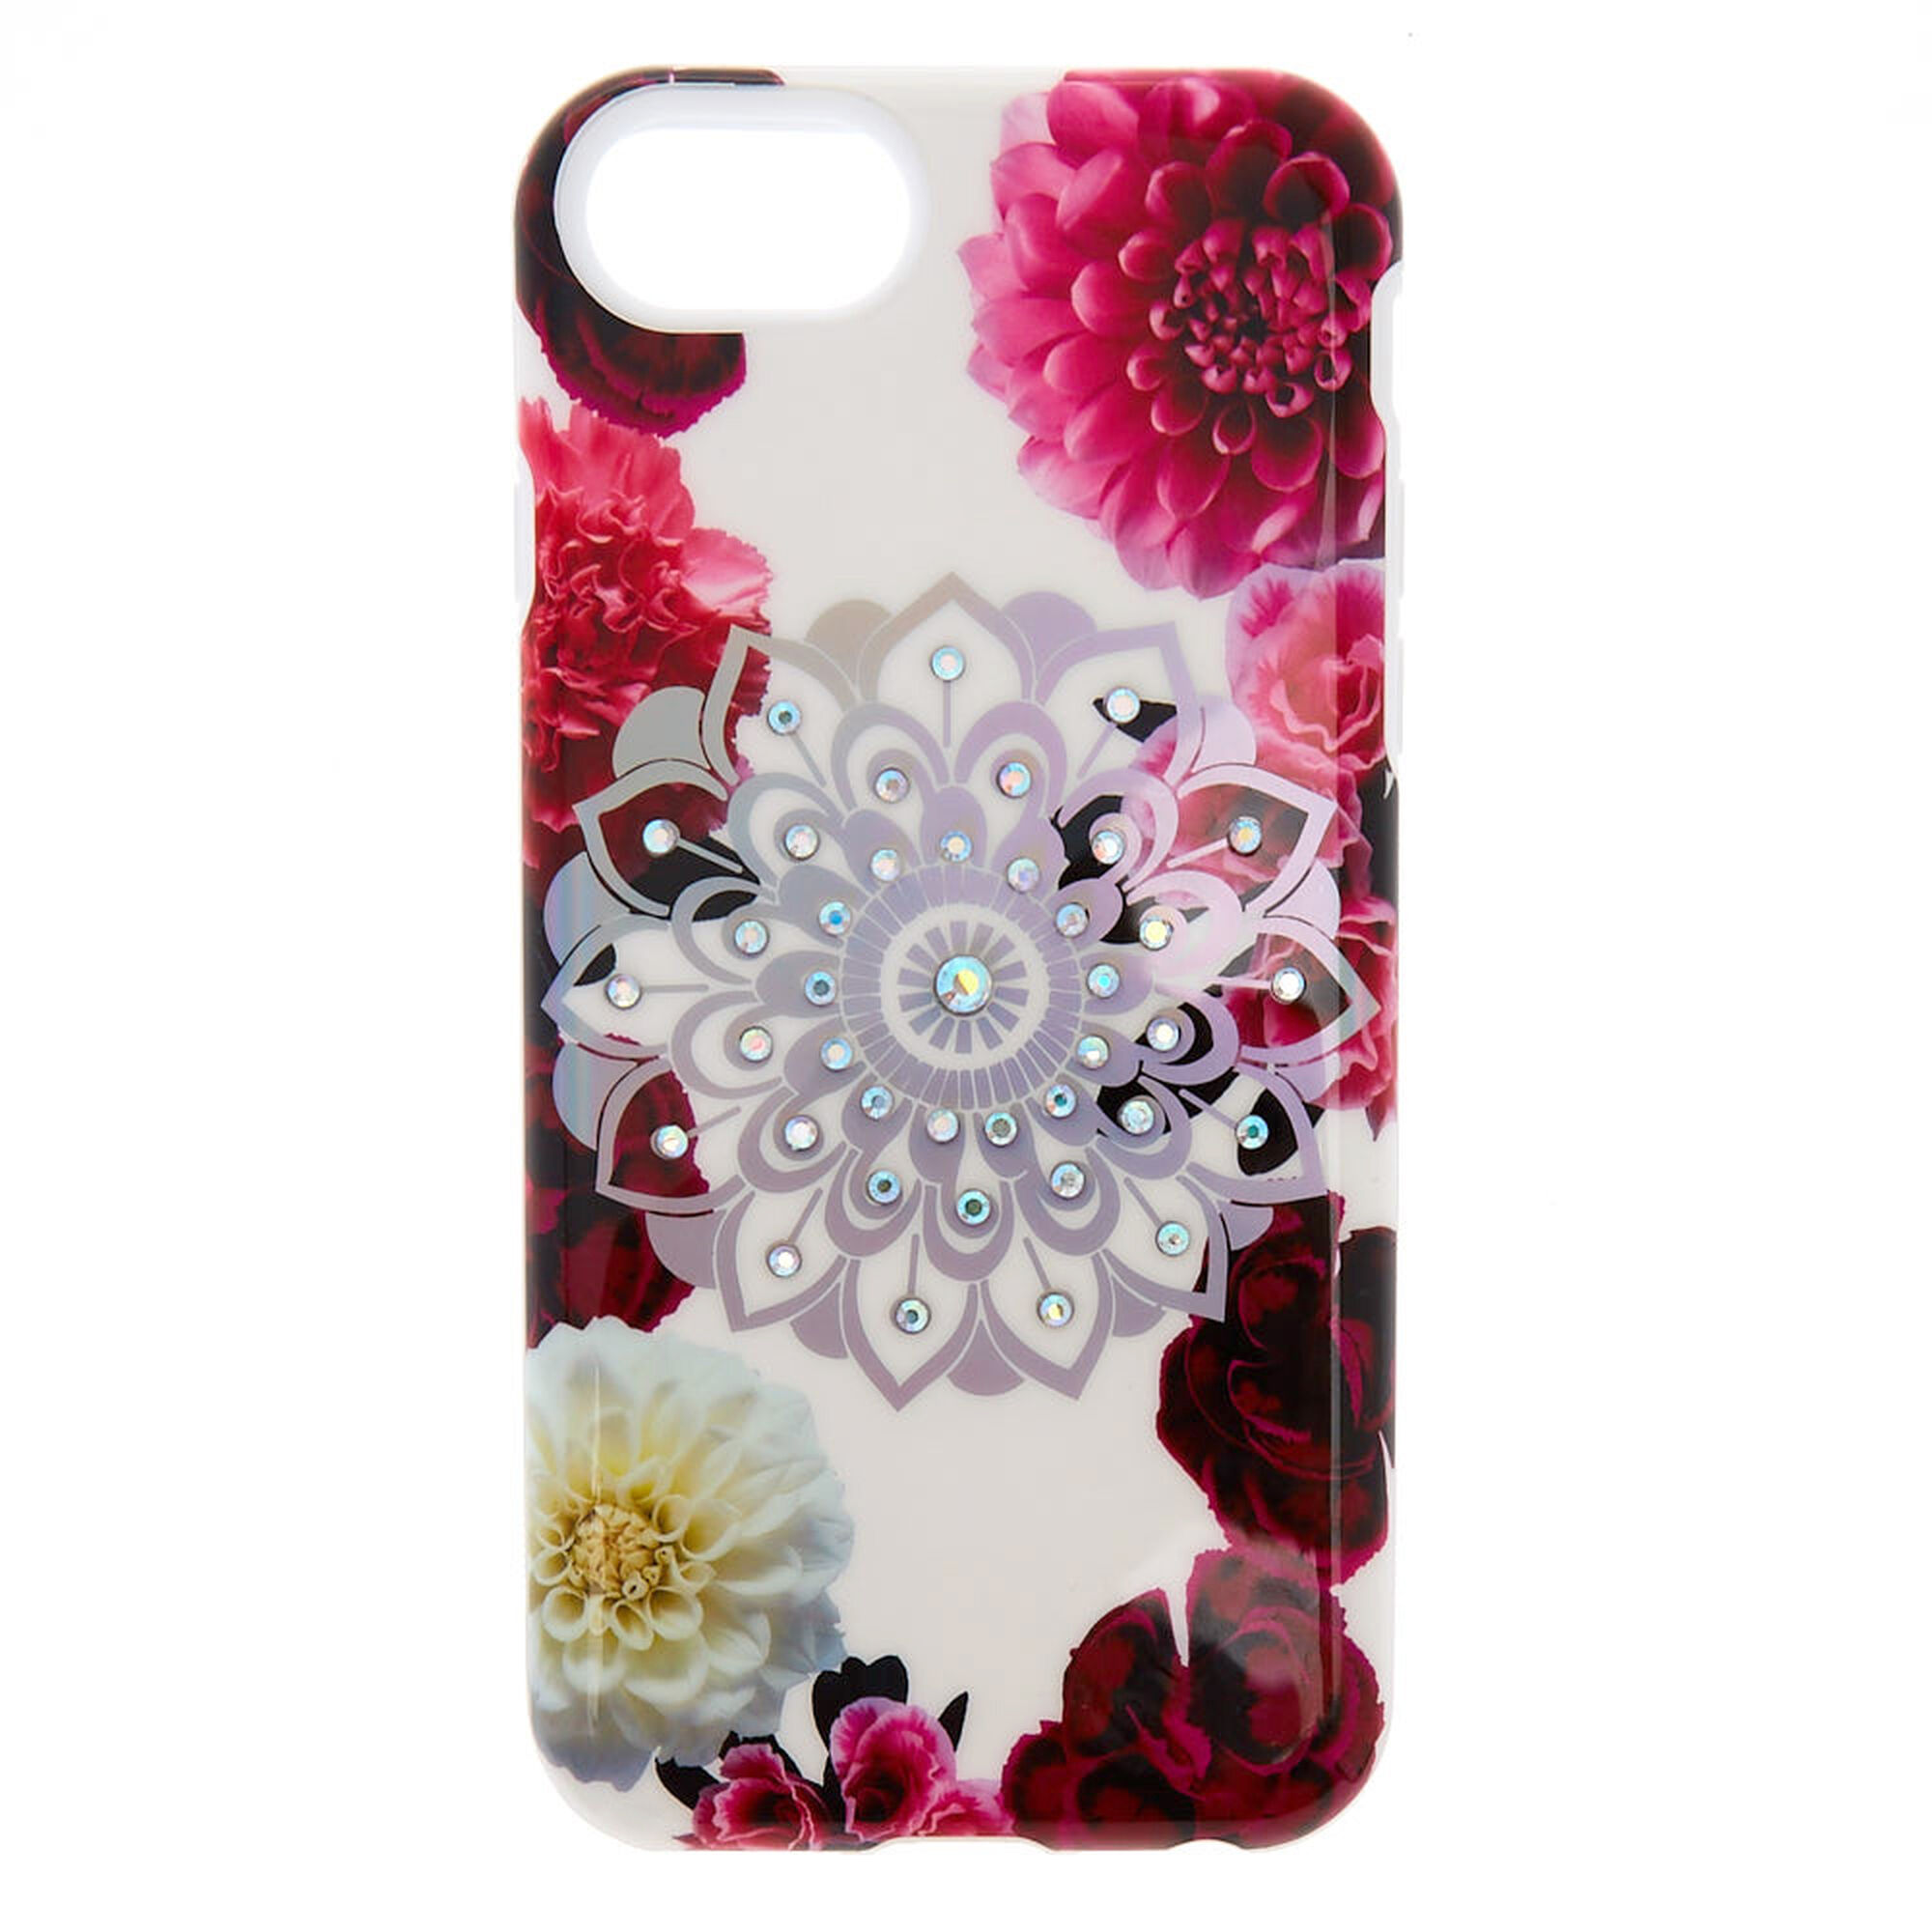 new product 686a8 b606c Floral Bling Mandala Protective Phone Case